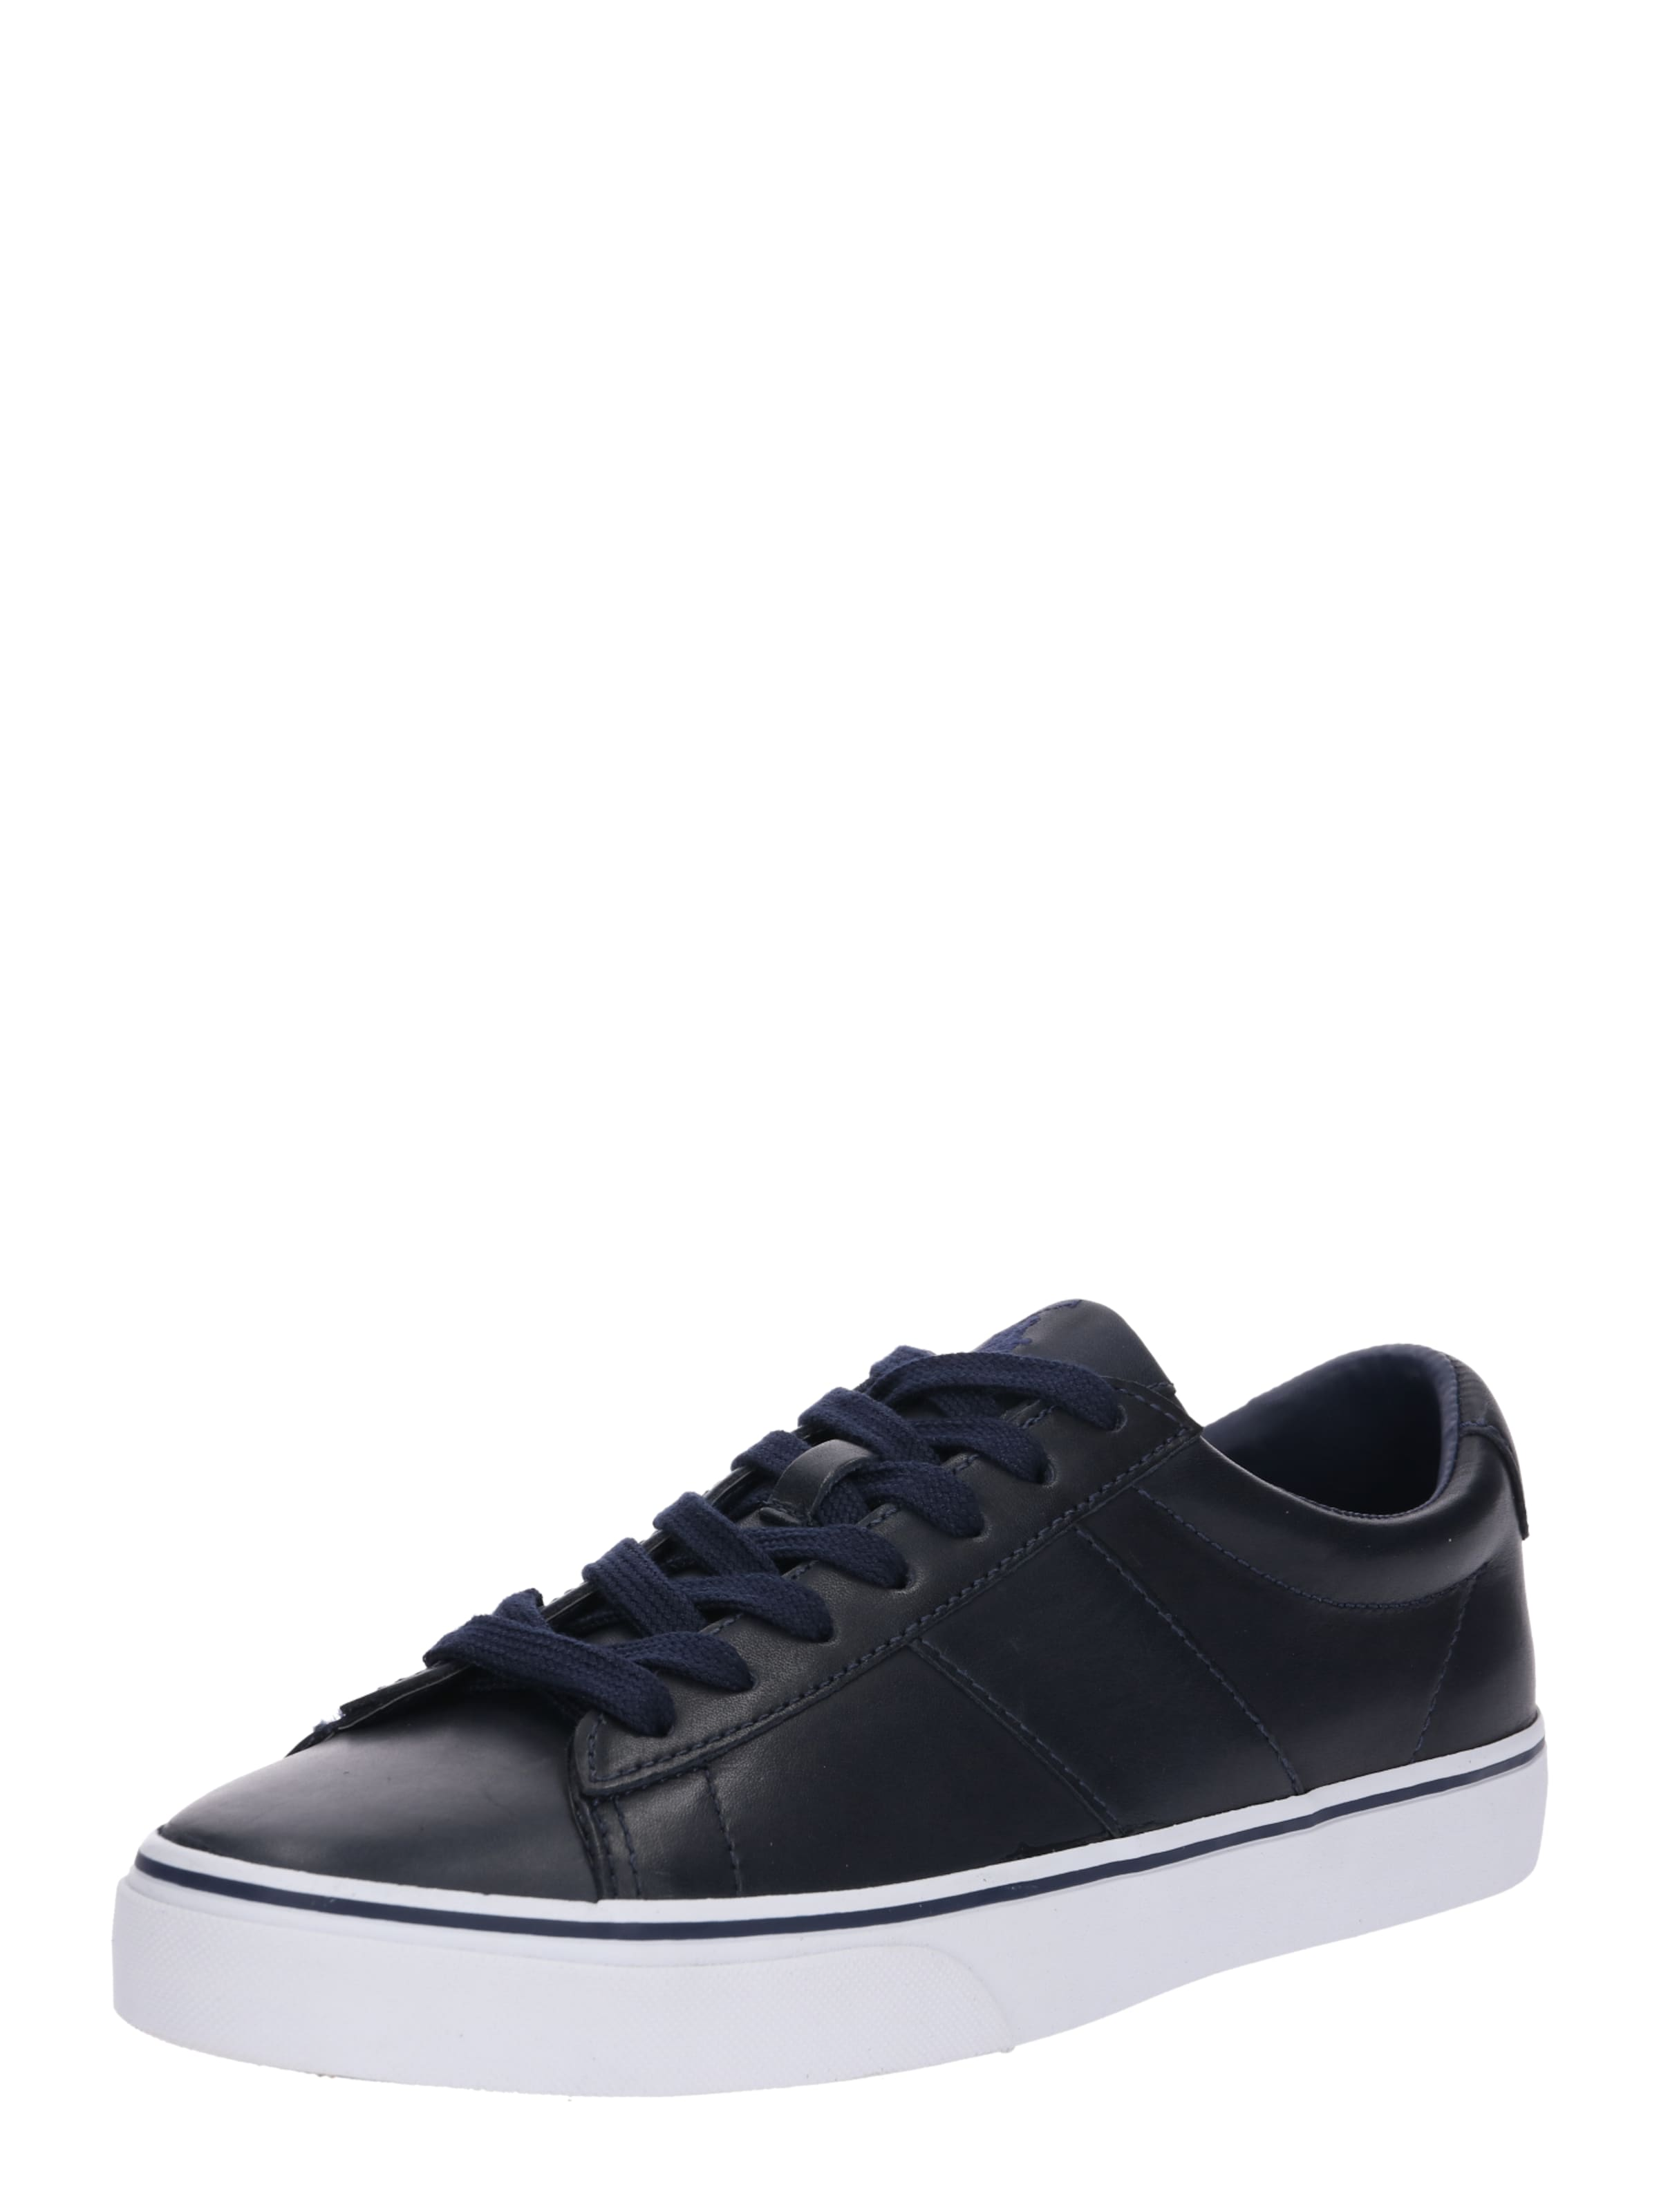 'sayer Ralph Sneaker Polo In Leather' Lauren Nachtblau roxBedC